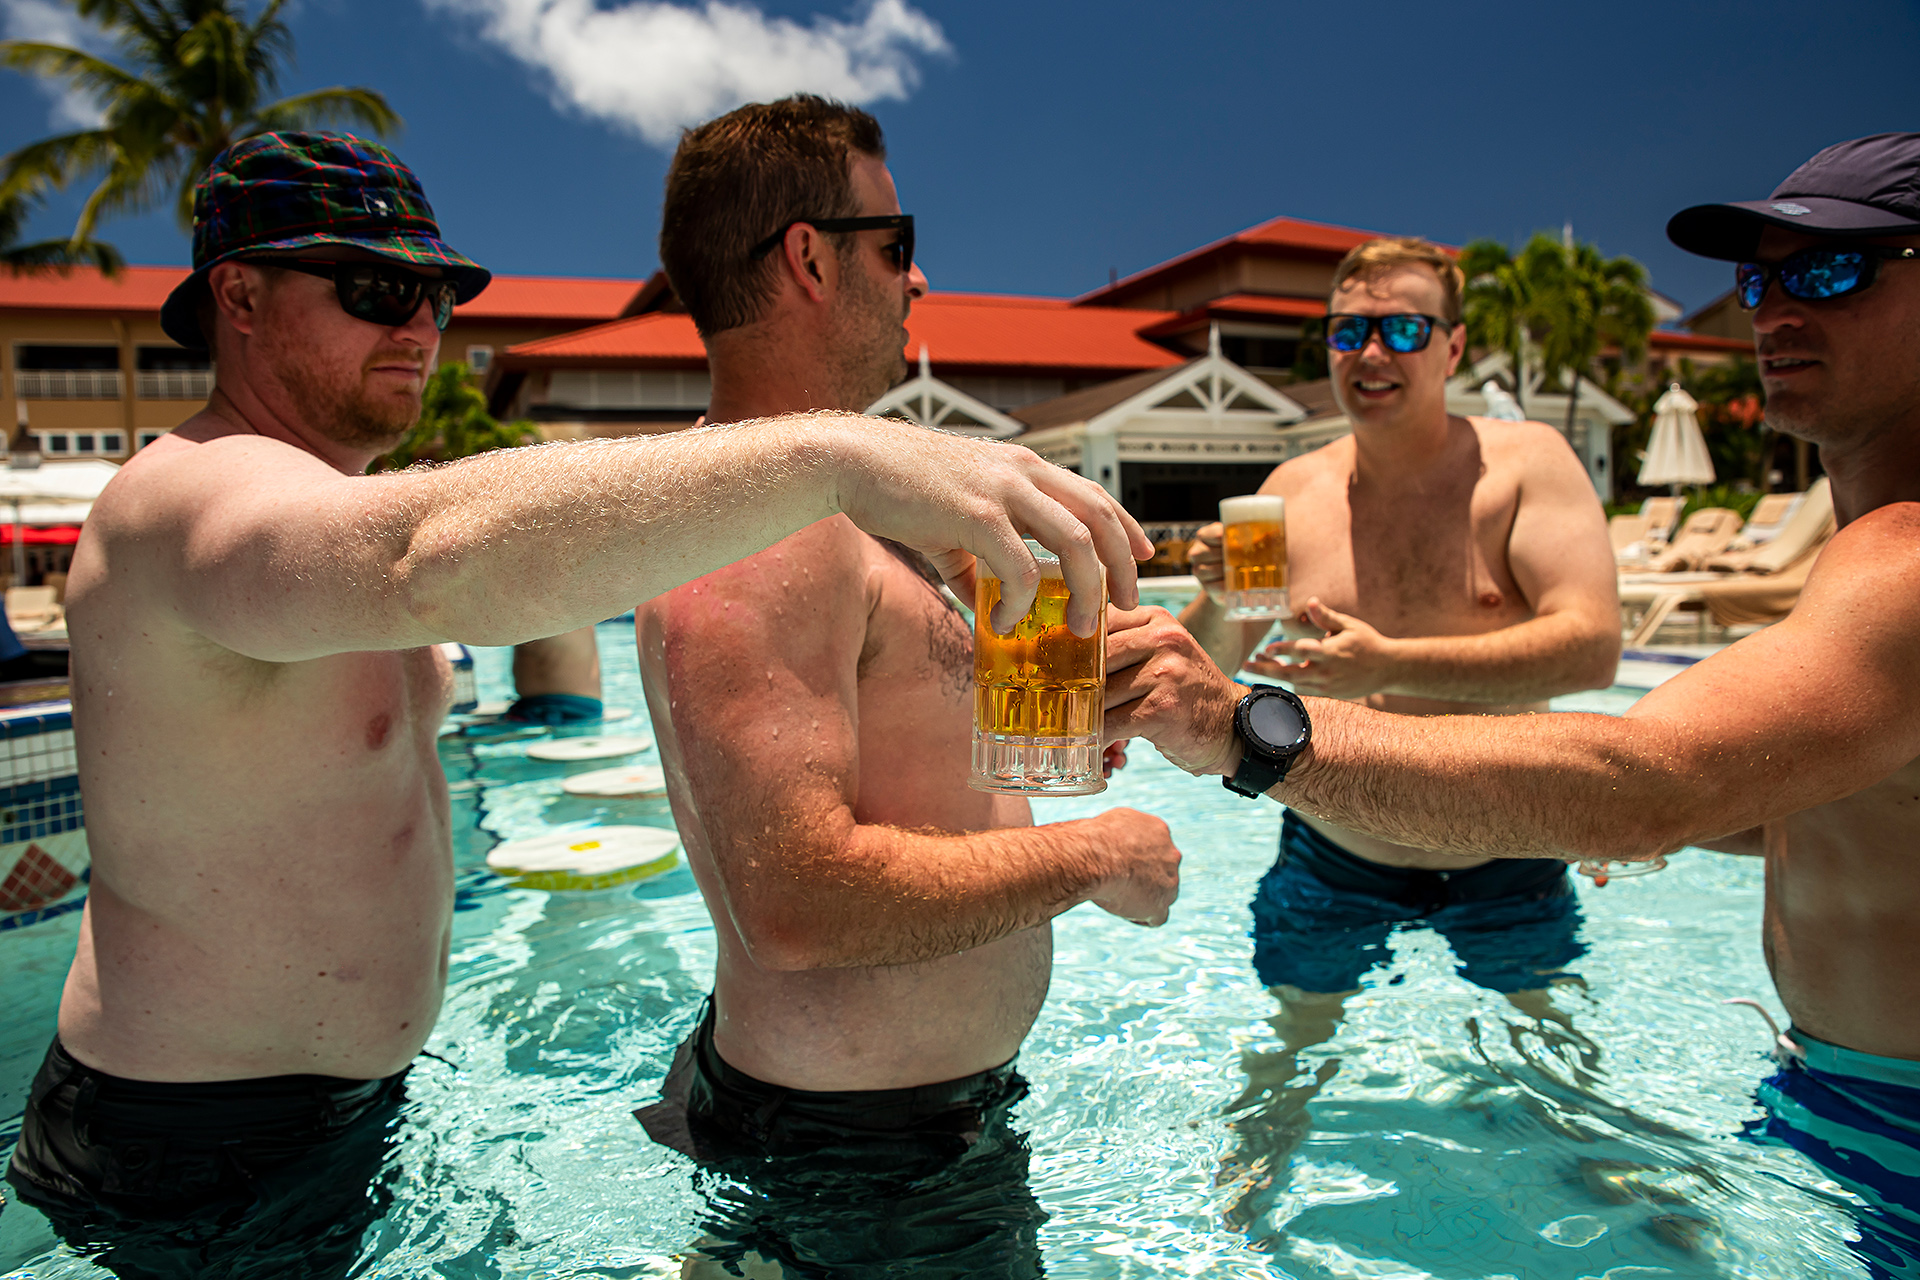 St. Lucia Elopement Fun Image | groom and groomsmen hang out and drink beer in the pool